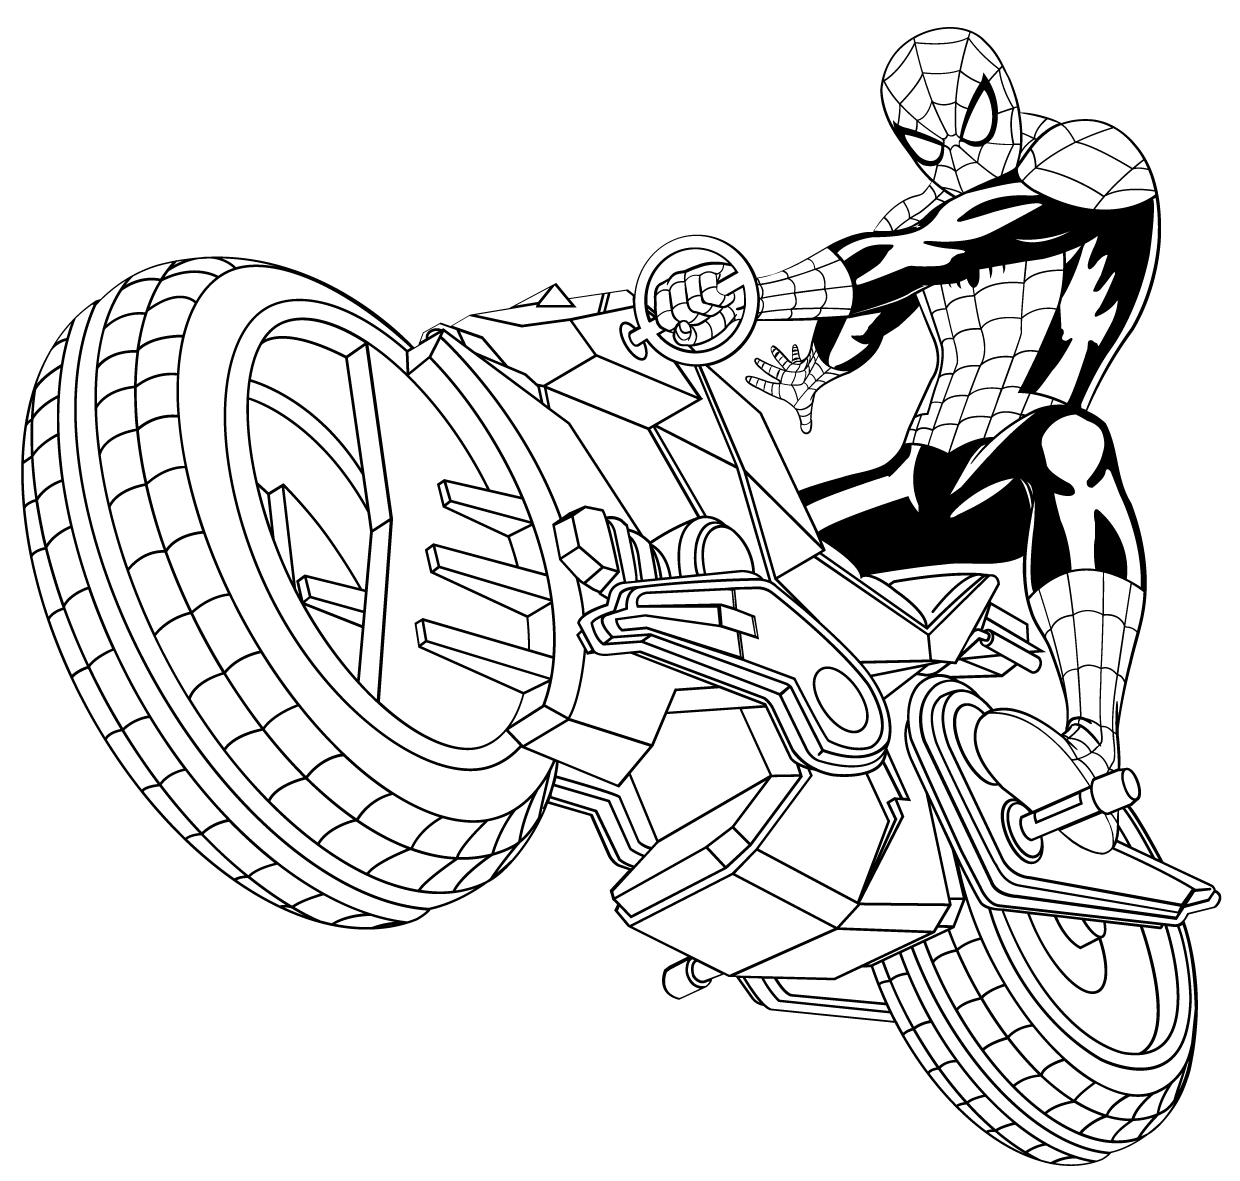 Dessin de coloriage spiderman imprimer cp24628 - Coloriage spiderman 1 ...